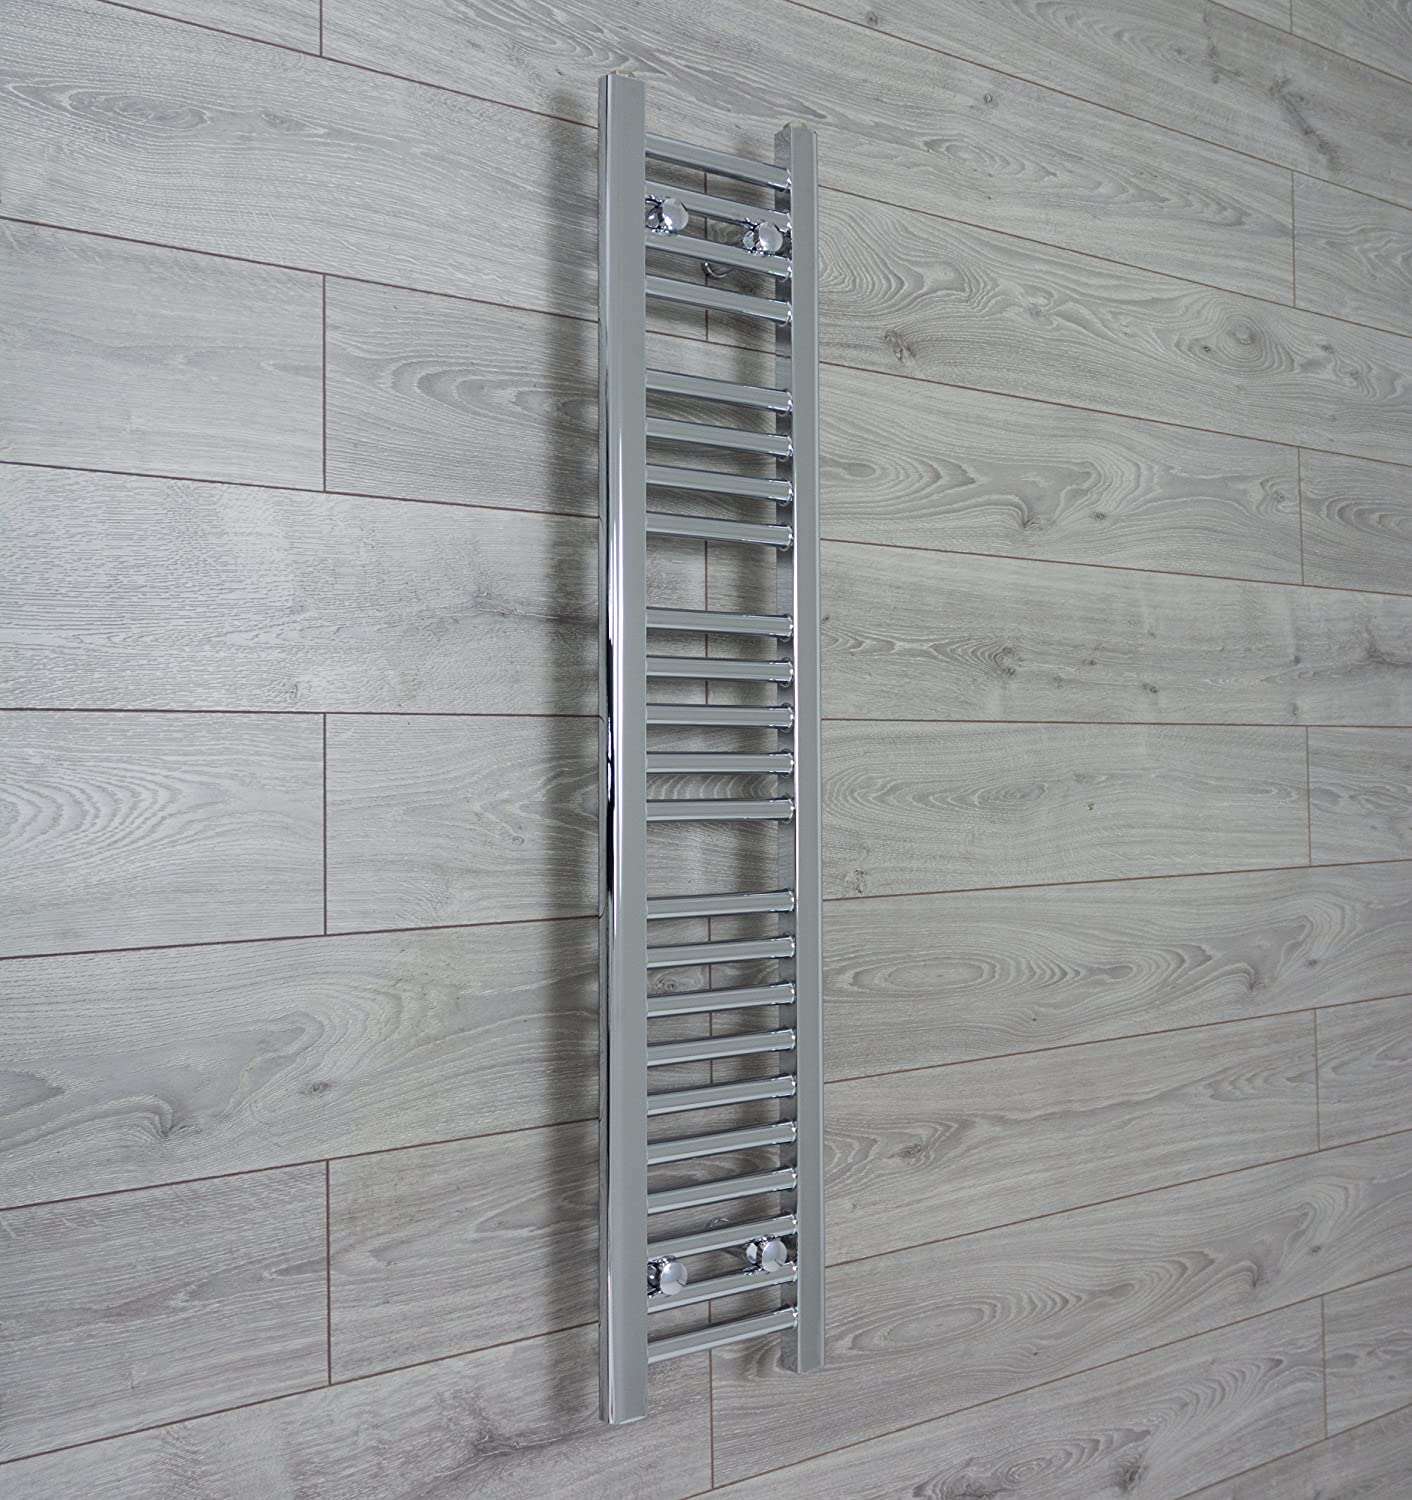 250mm wide x 1200mm high Small Narrow Heated Towel Rail Straight Flat Chrome Bathroom Warmer Radiator Rack